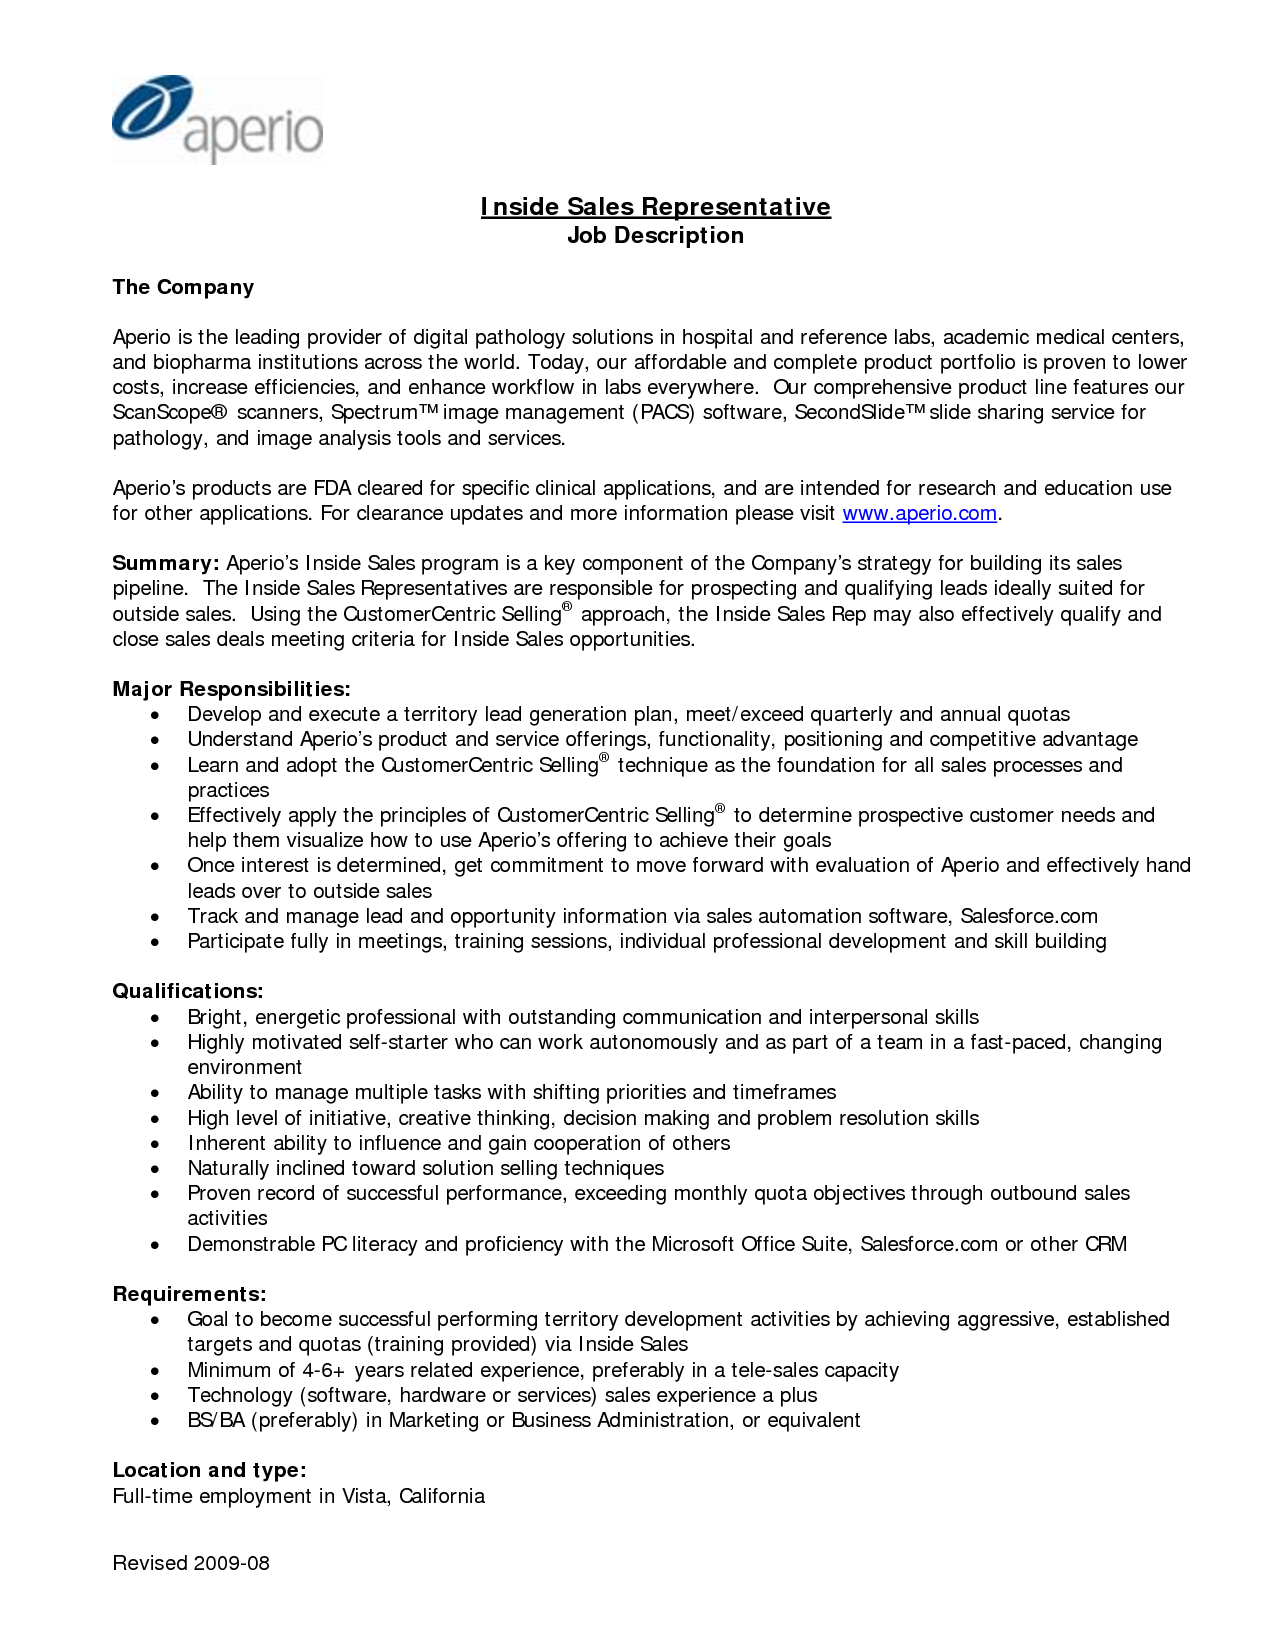 Inside Sales Representative Resume Examples Inside Sales